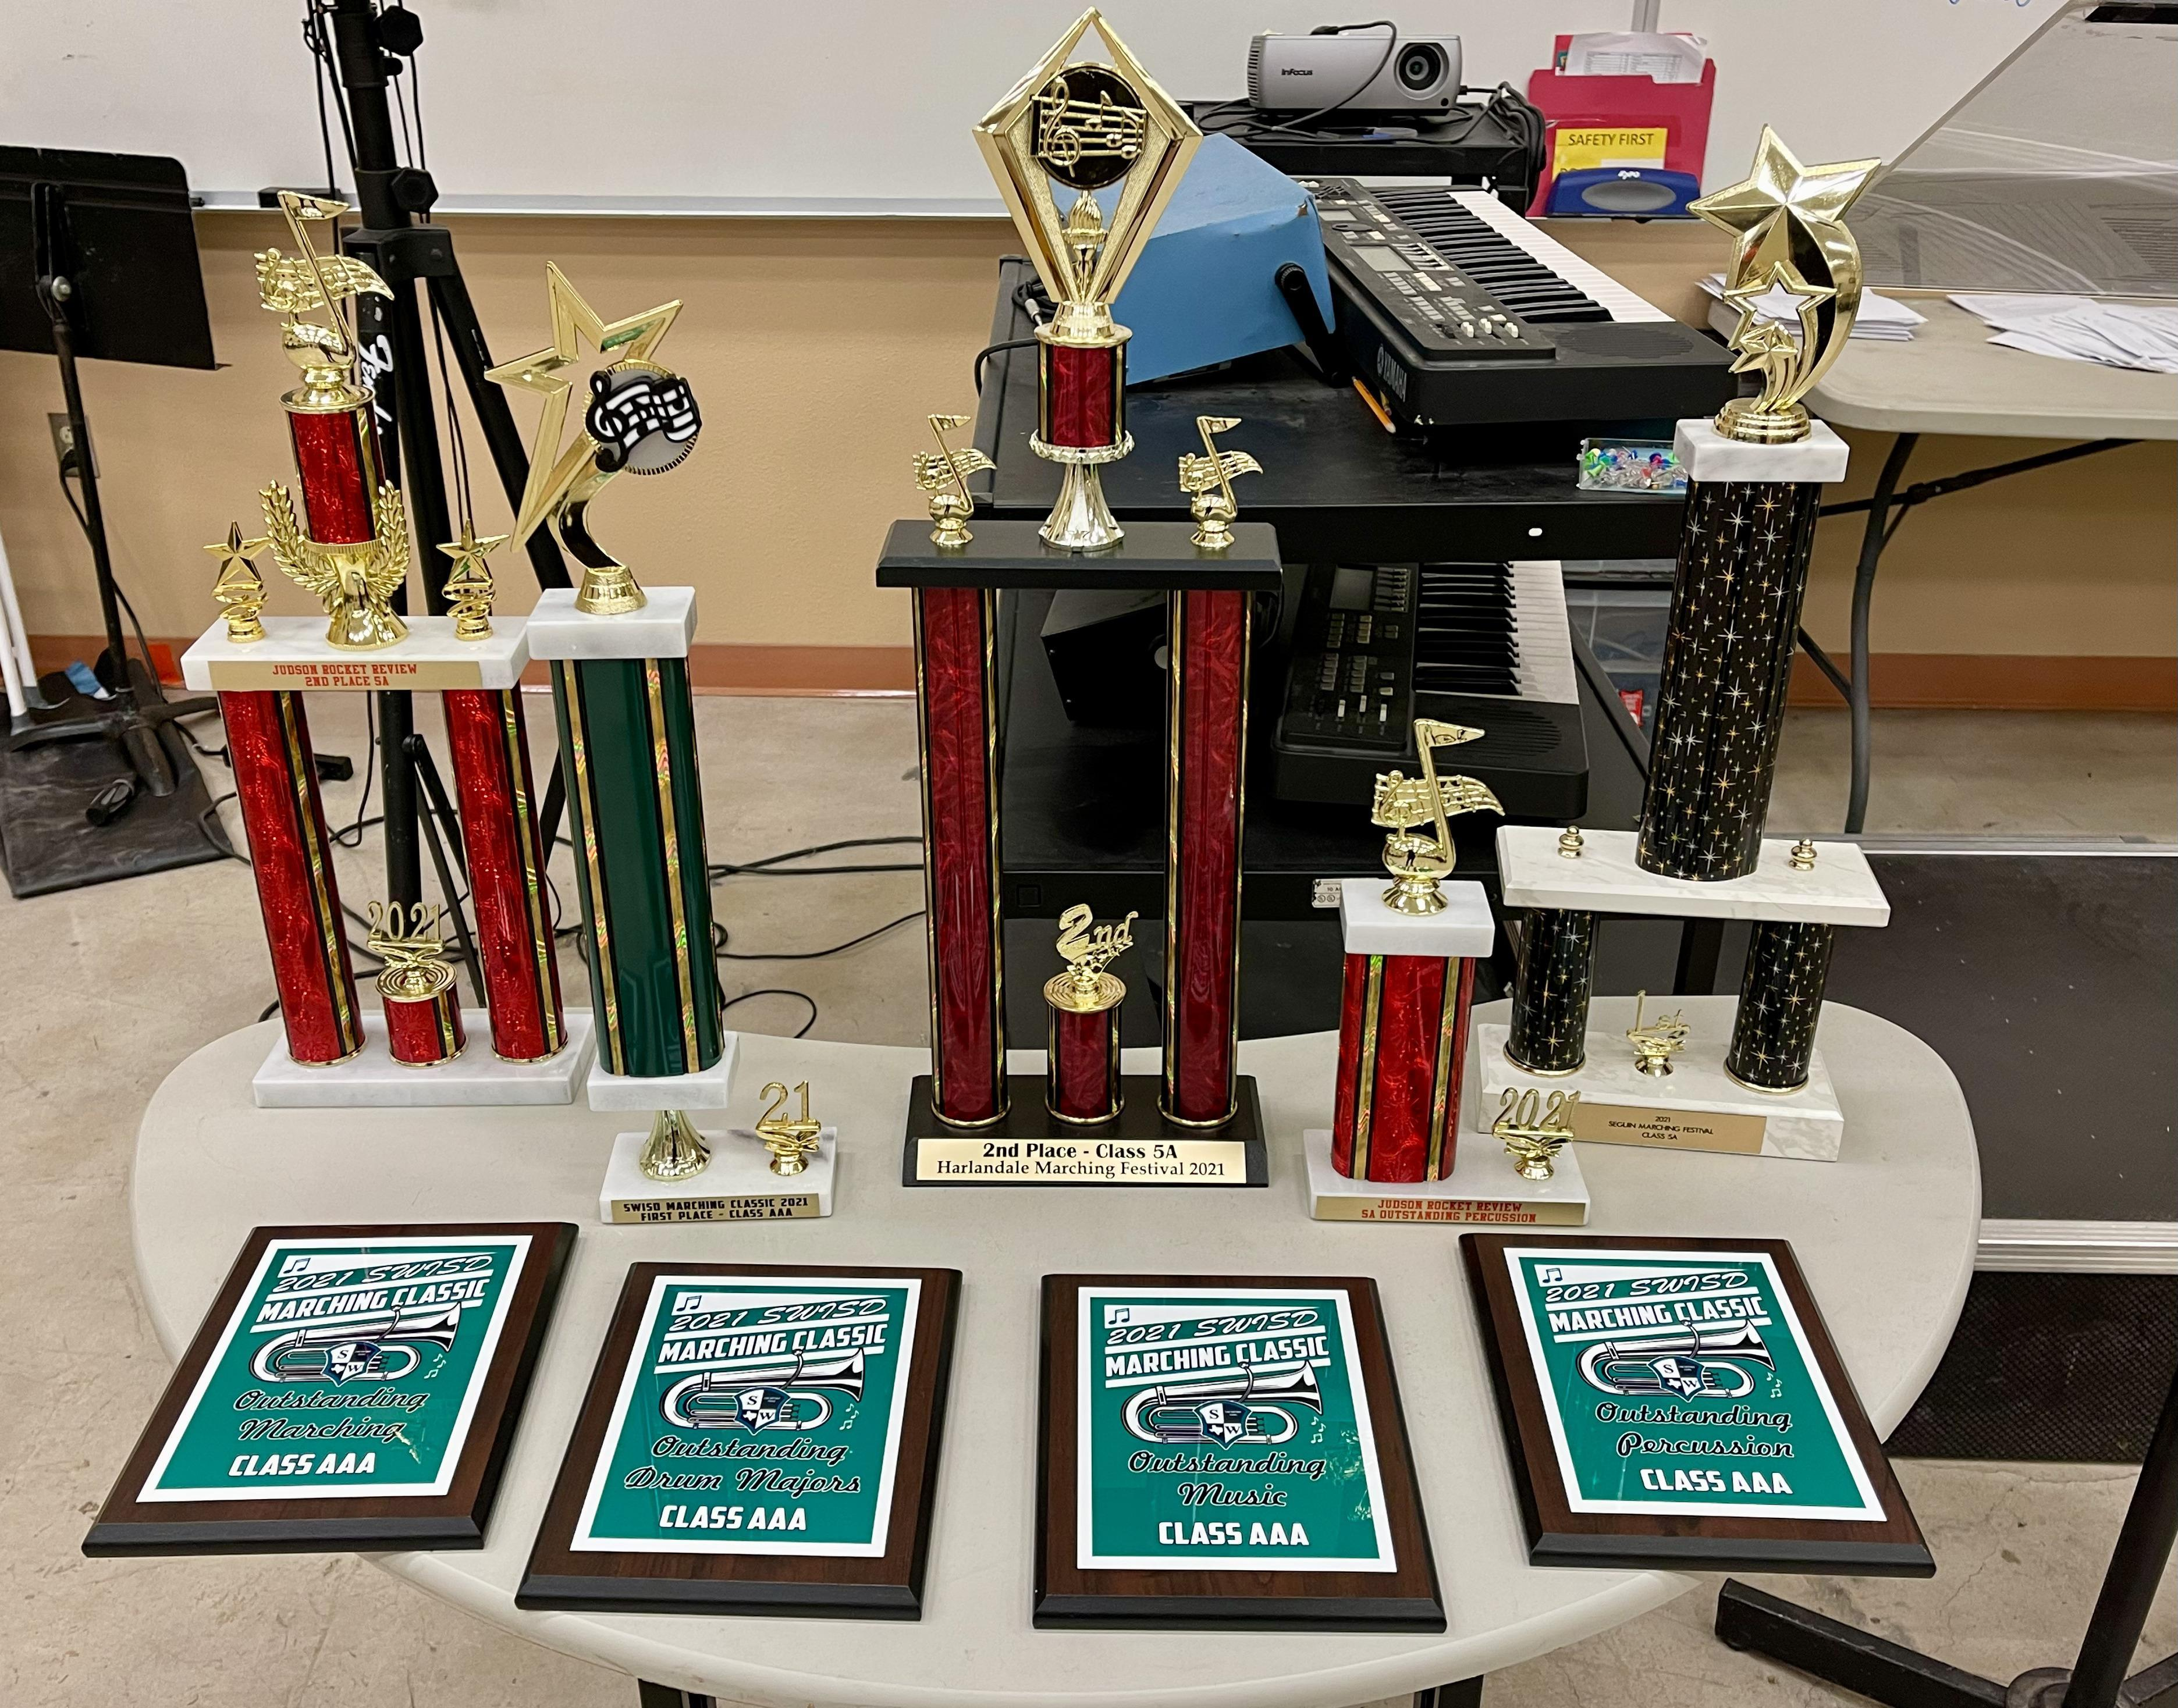 Panther Band Trophies from our Pre-UIL Marching Season!